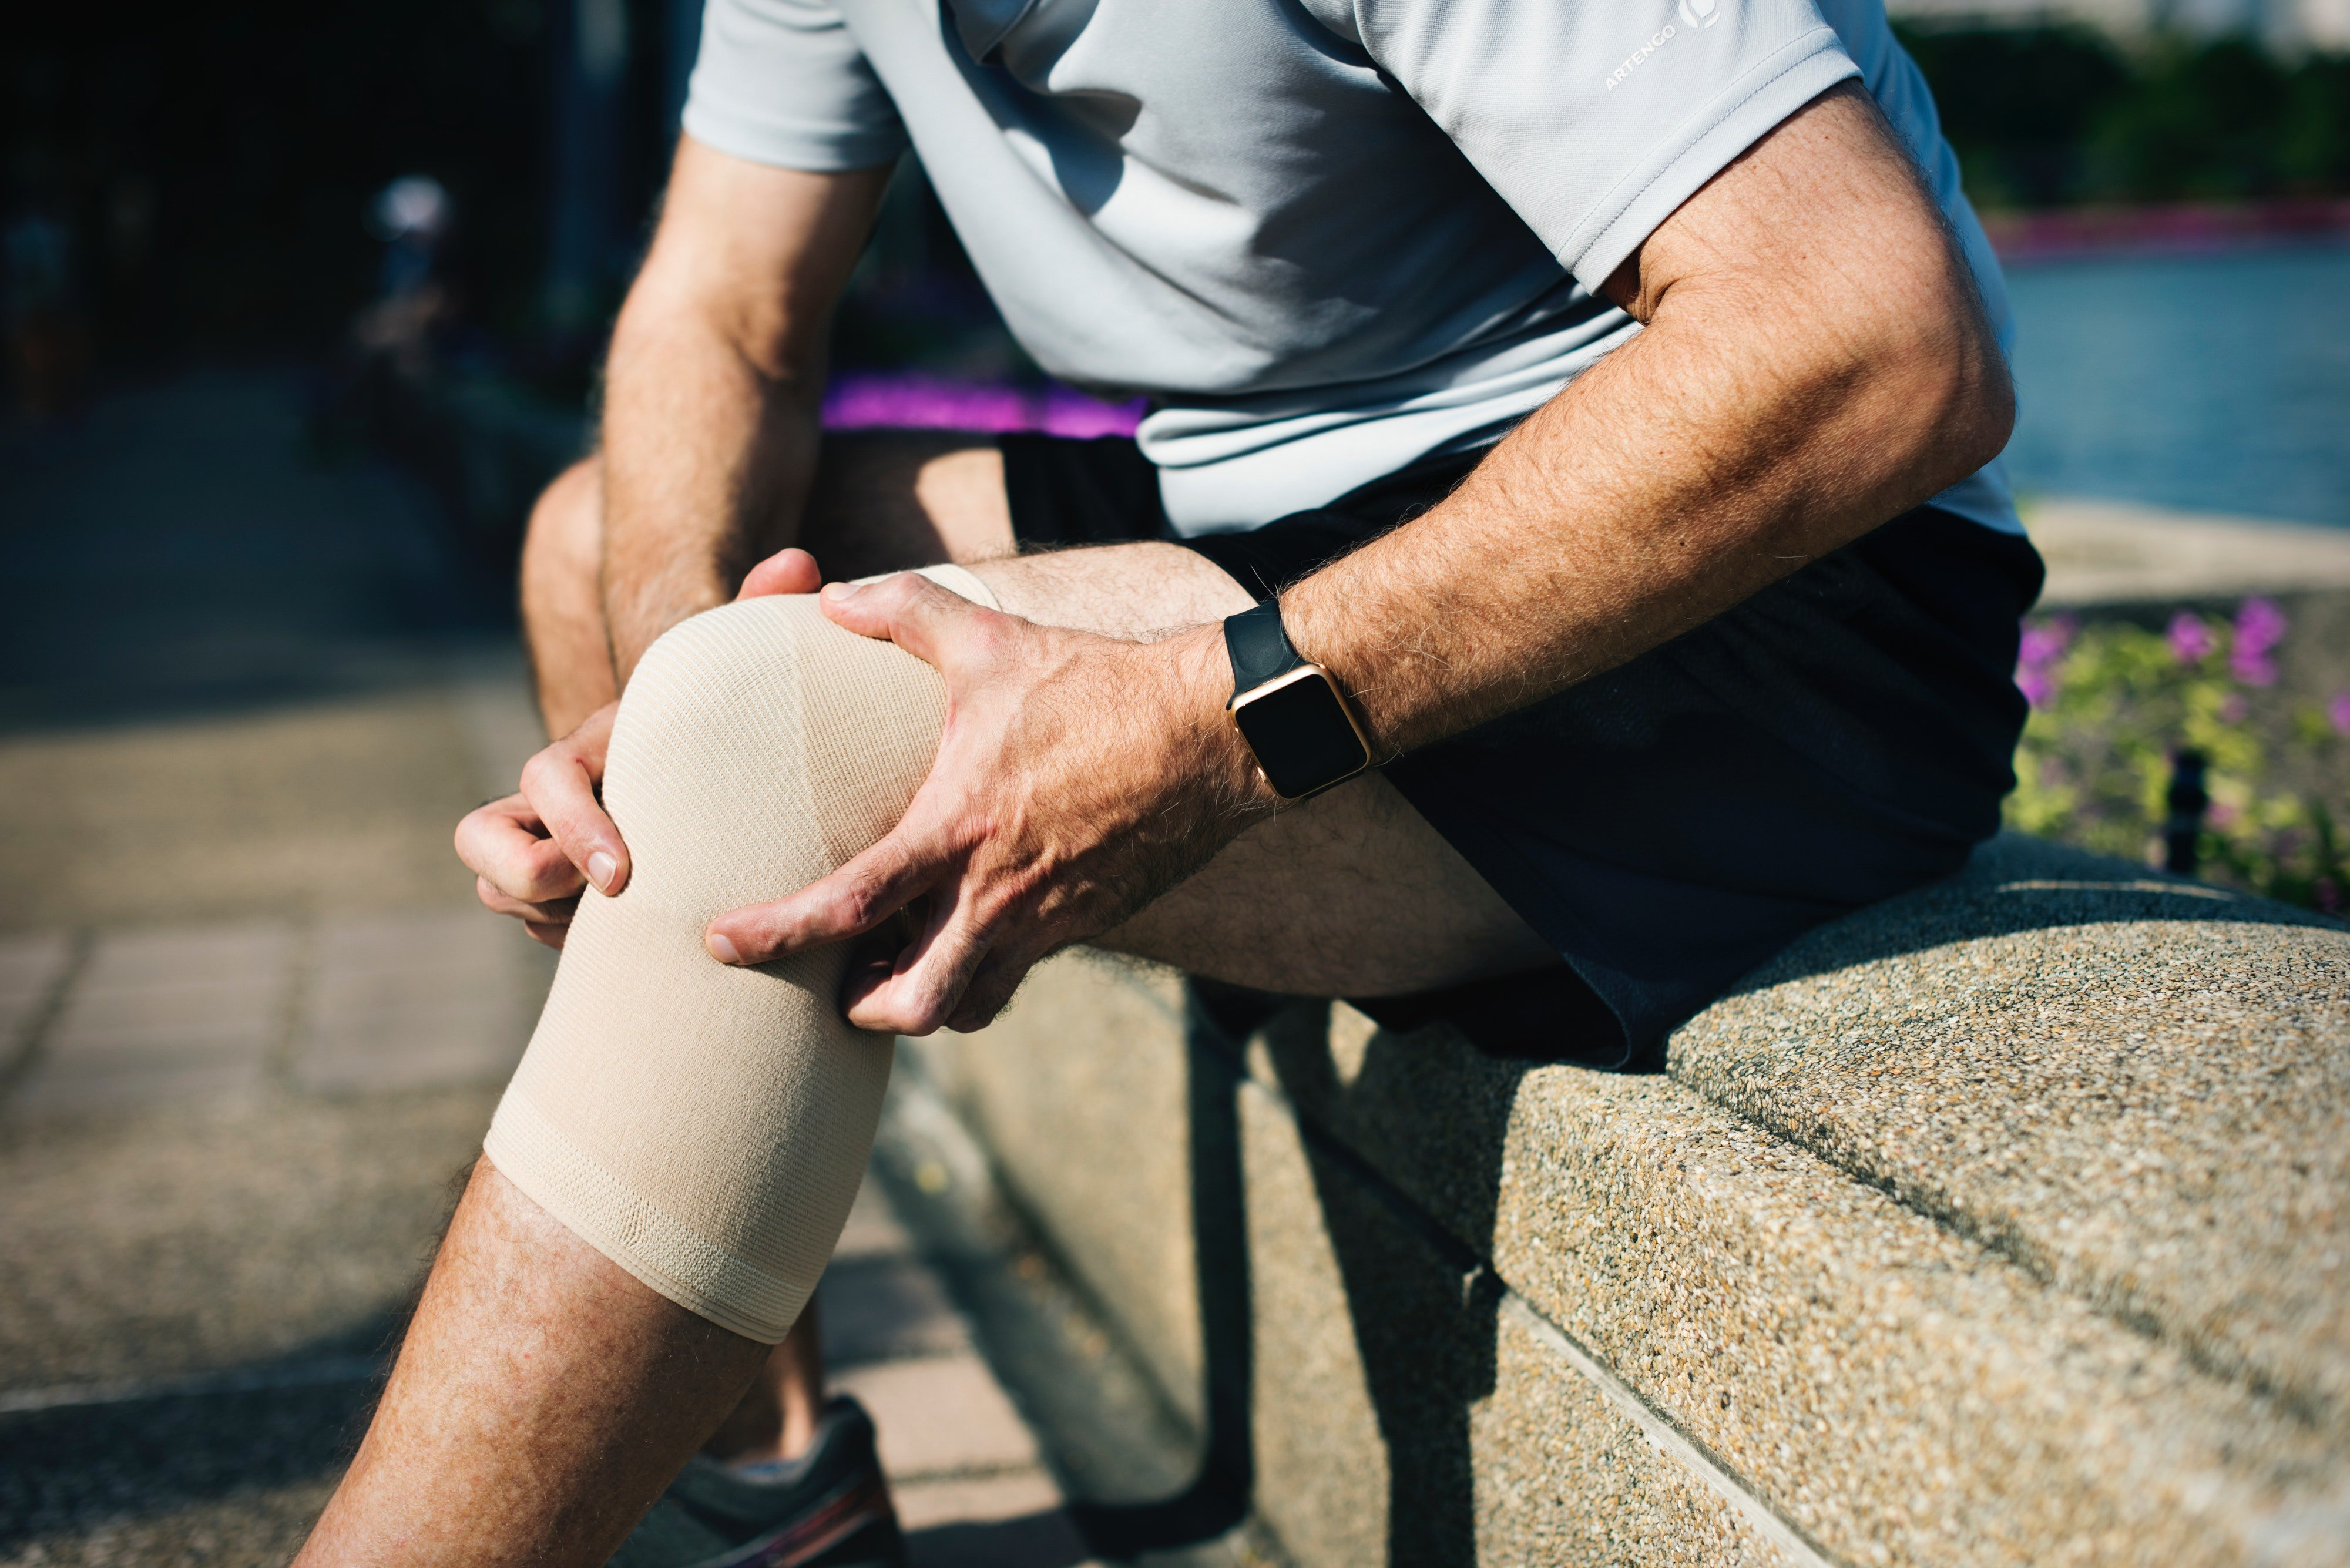 A man wearing a knee support